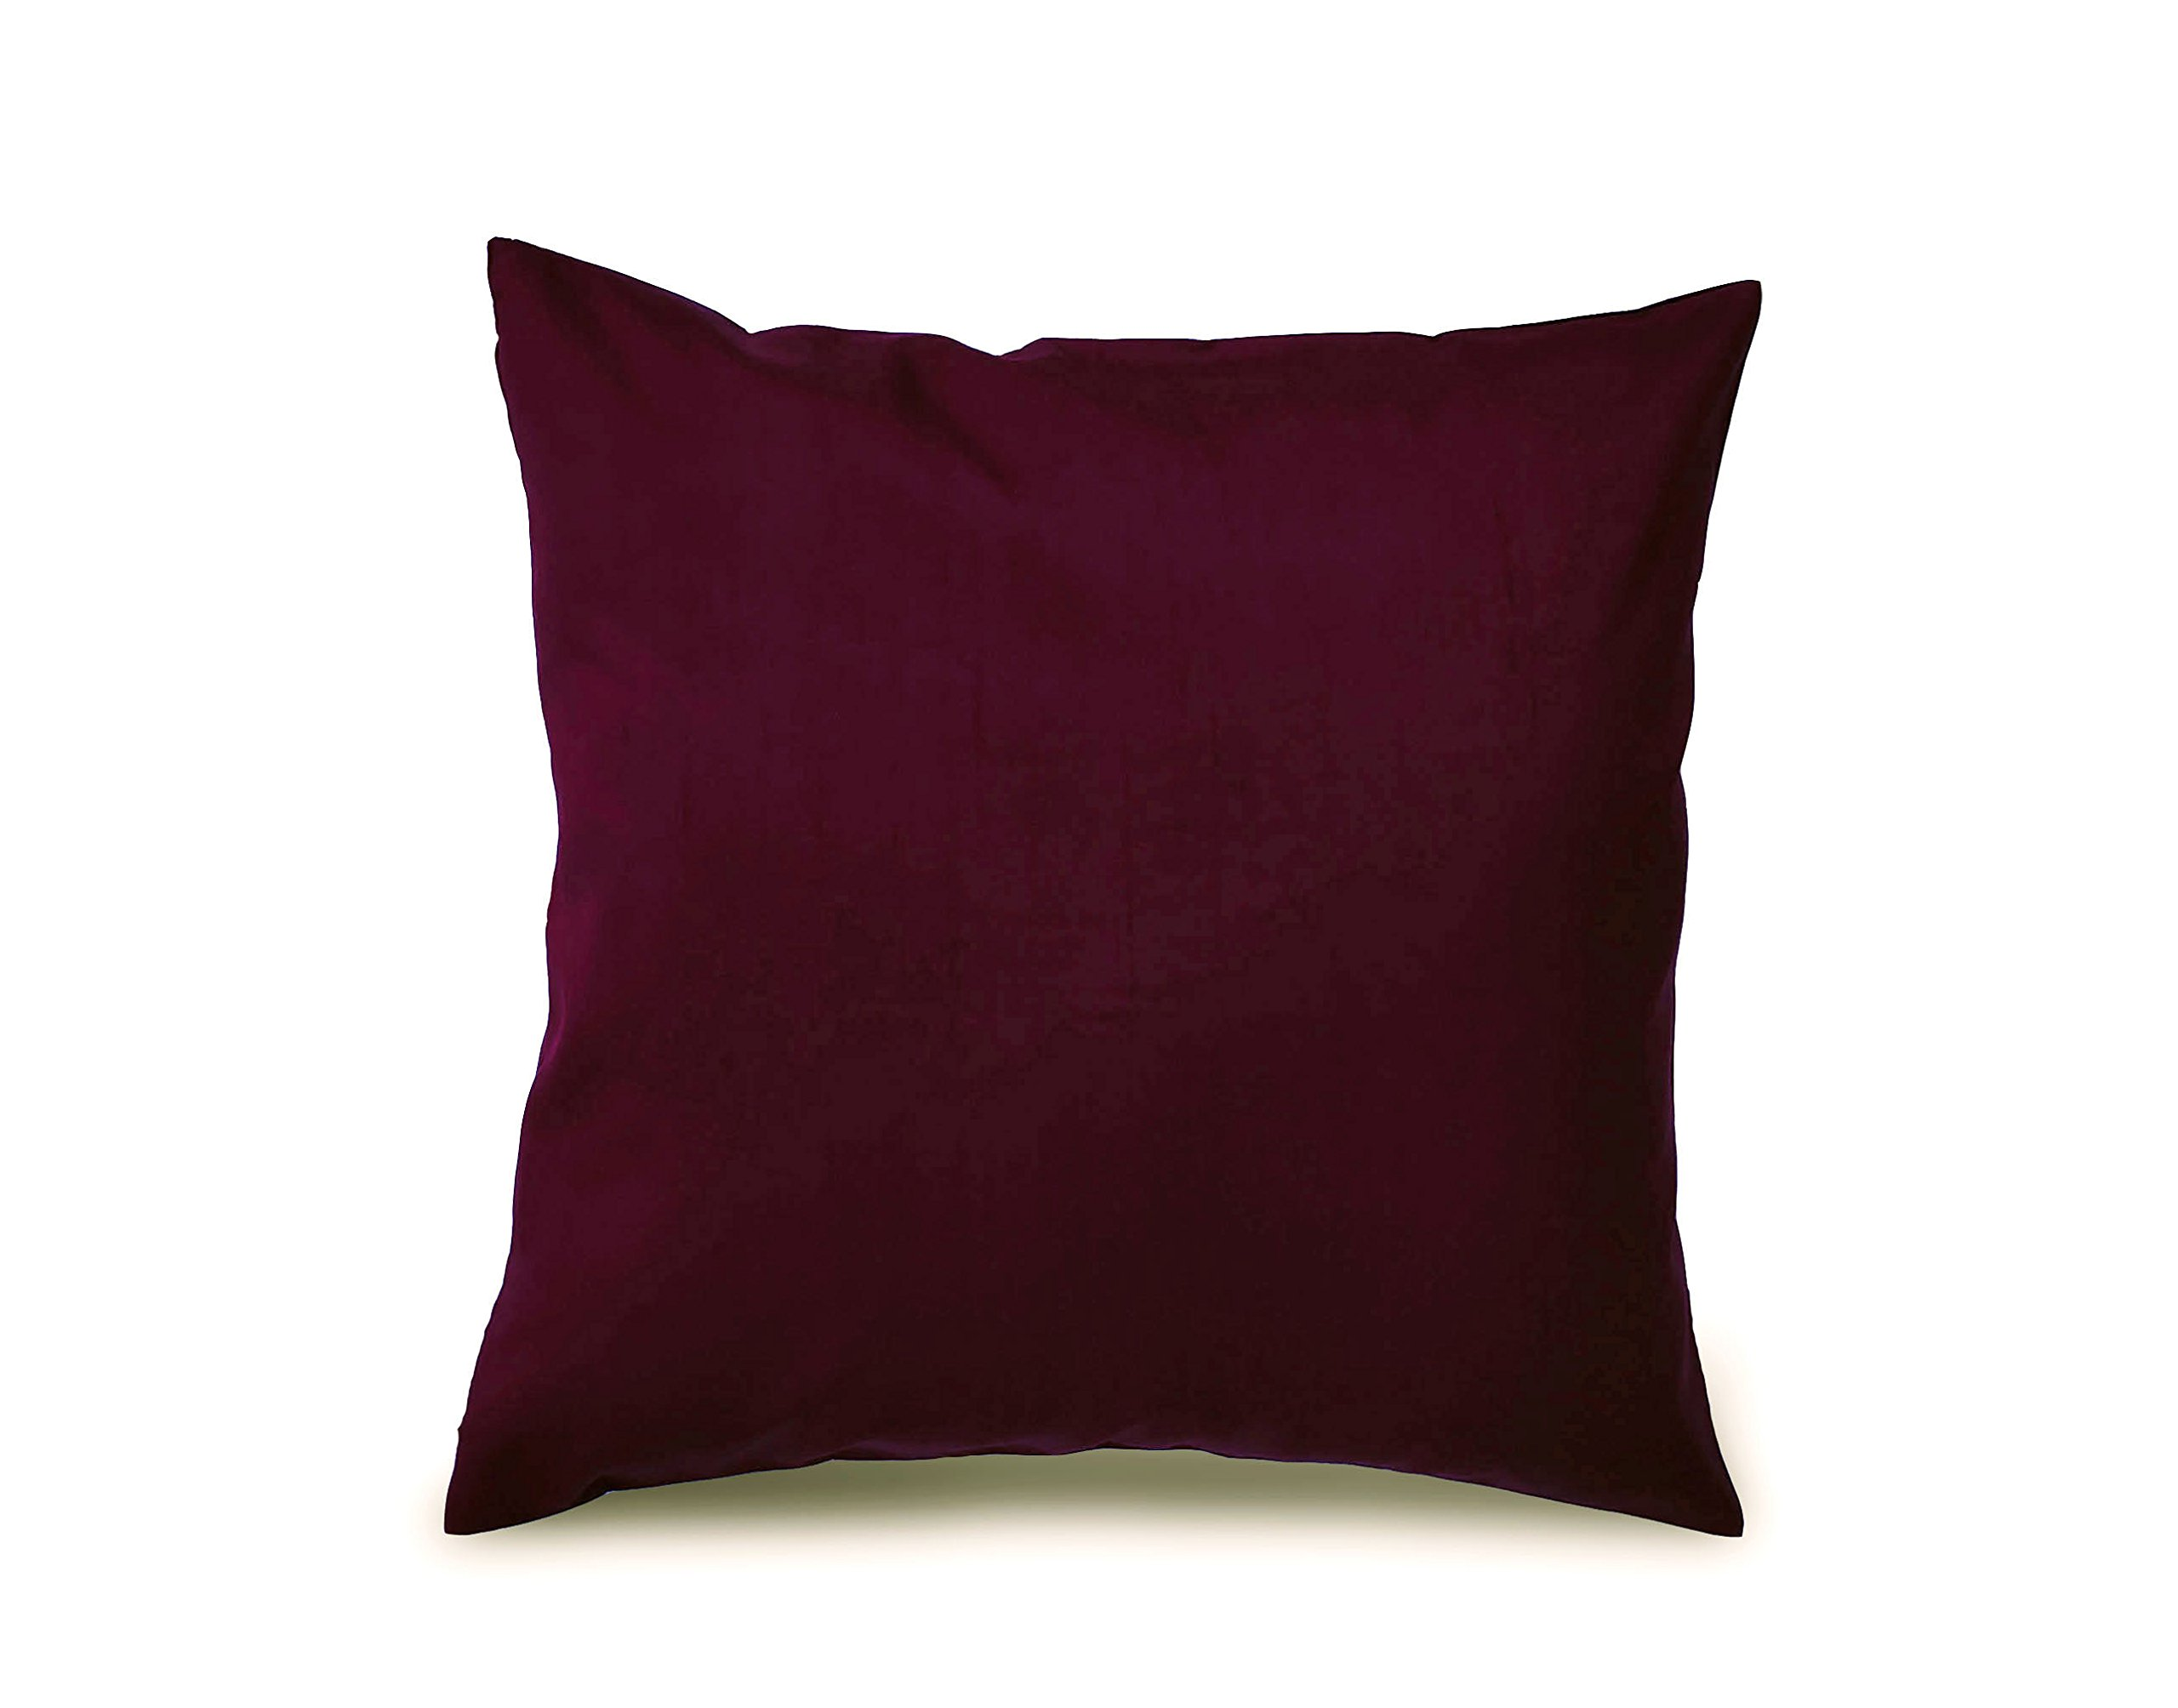 Throw Pillow Set In Maroon 18x18 Inches Set of 2 100% Pure Silk Dupioni 18 colors available